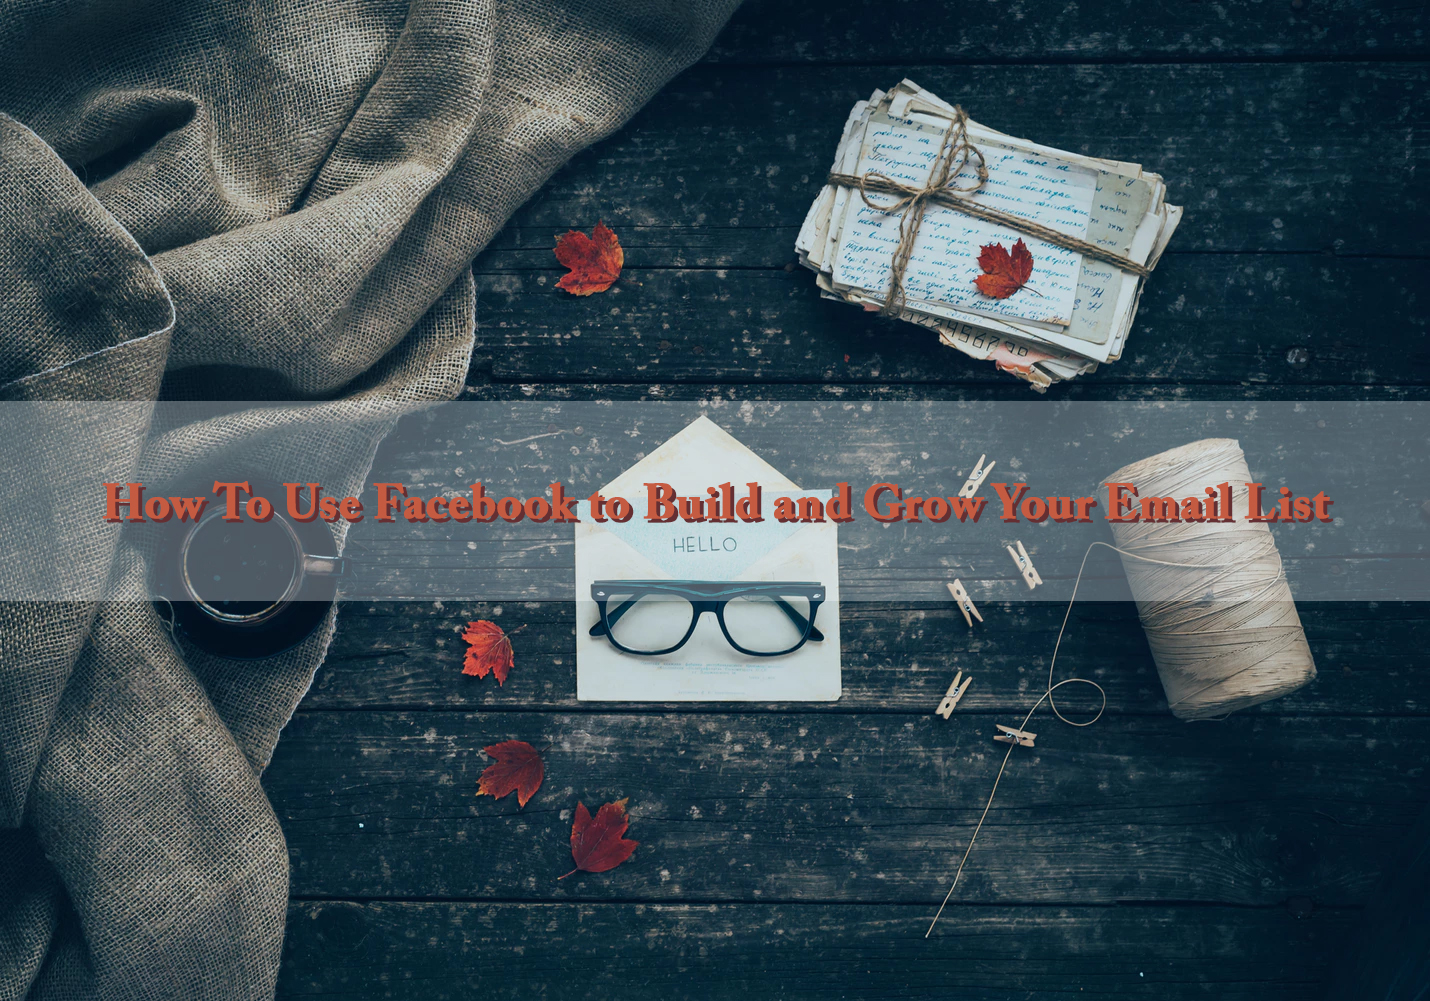 Build and Grow Your Email List with Facebook Marketing